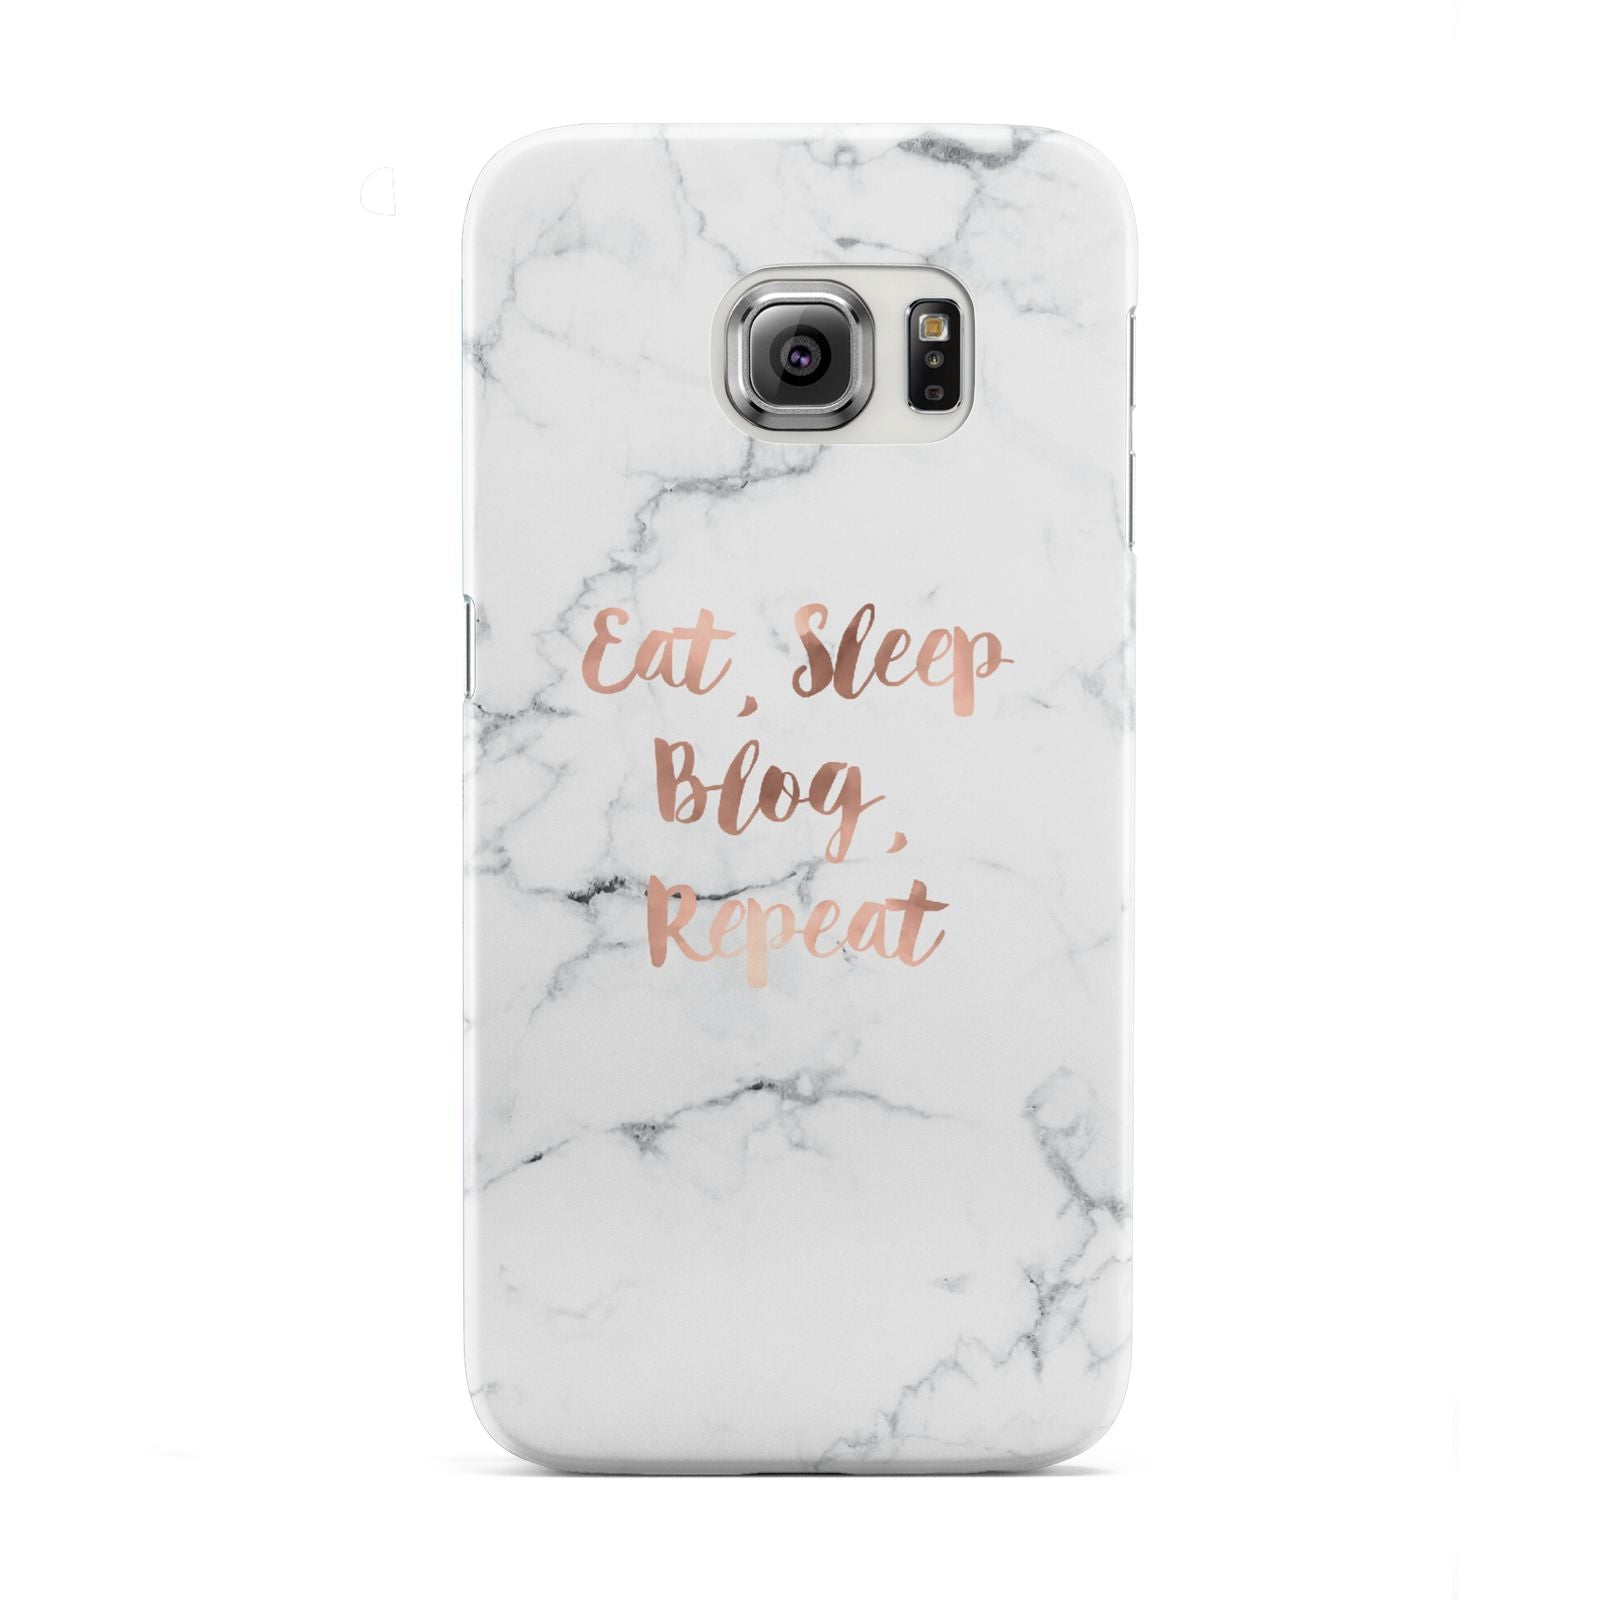 Eat Sleep Blog Repeat Marble Effect Samsung Galaxy S6 Edge Case